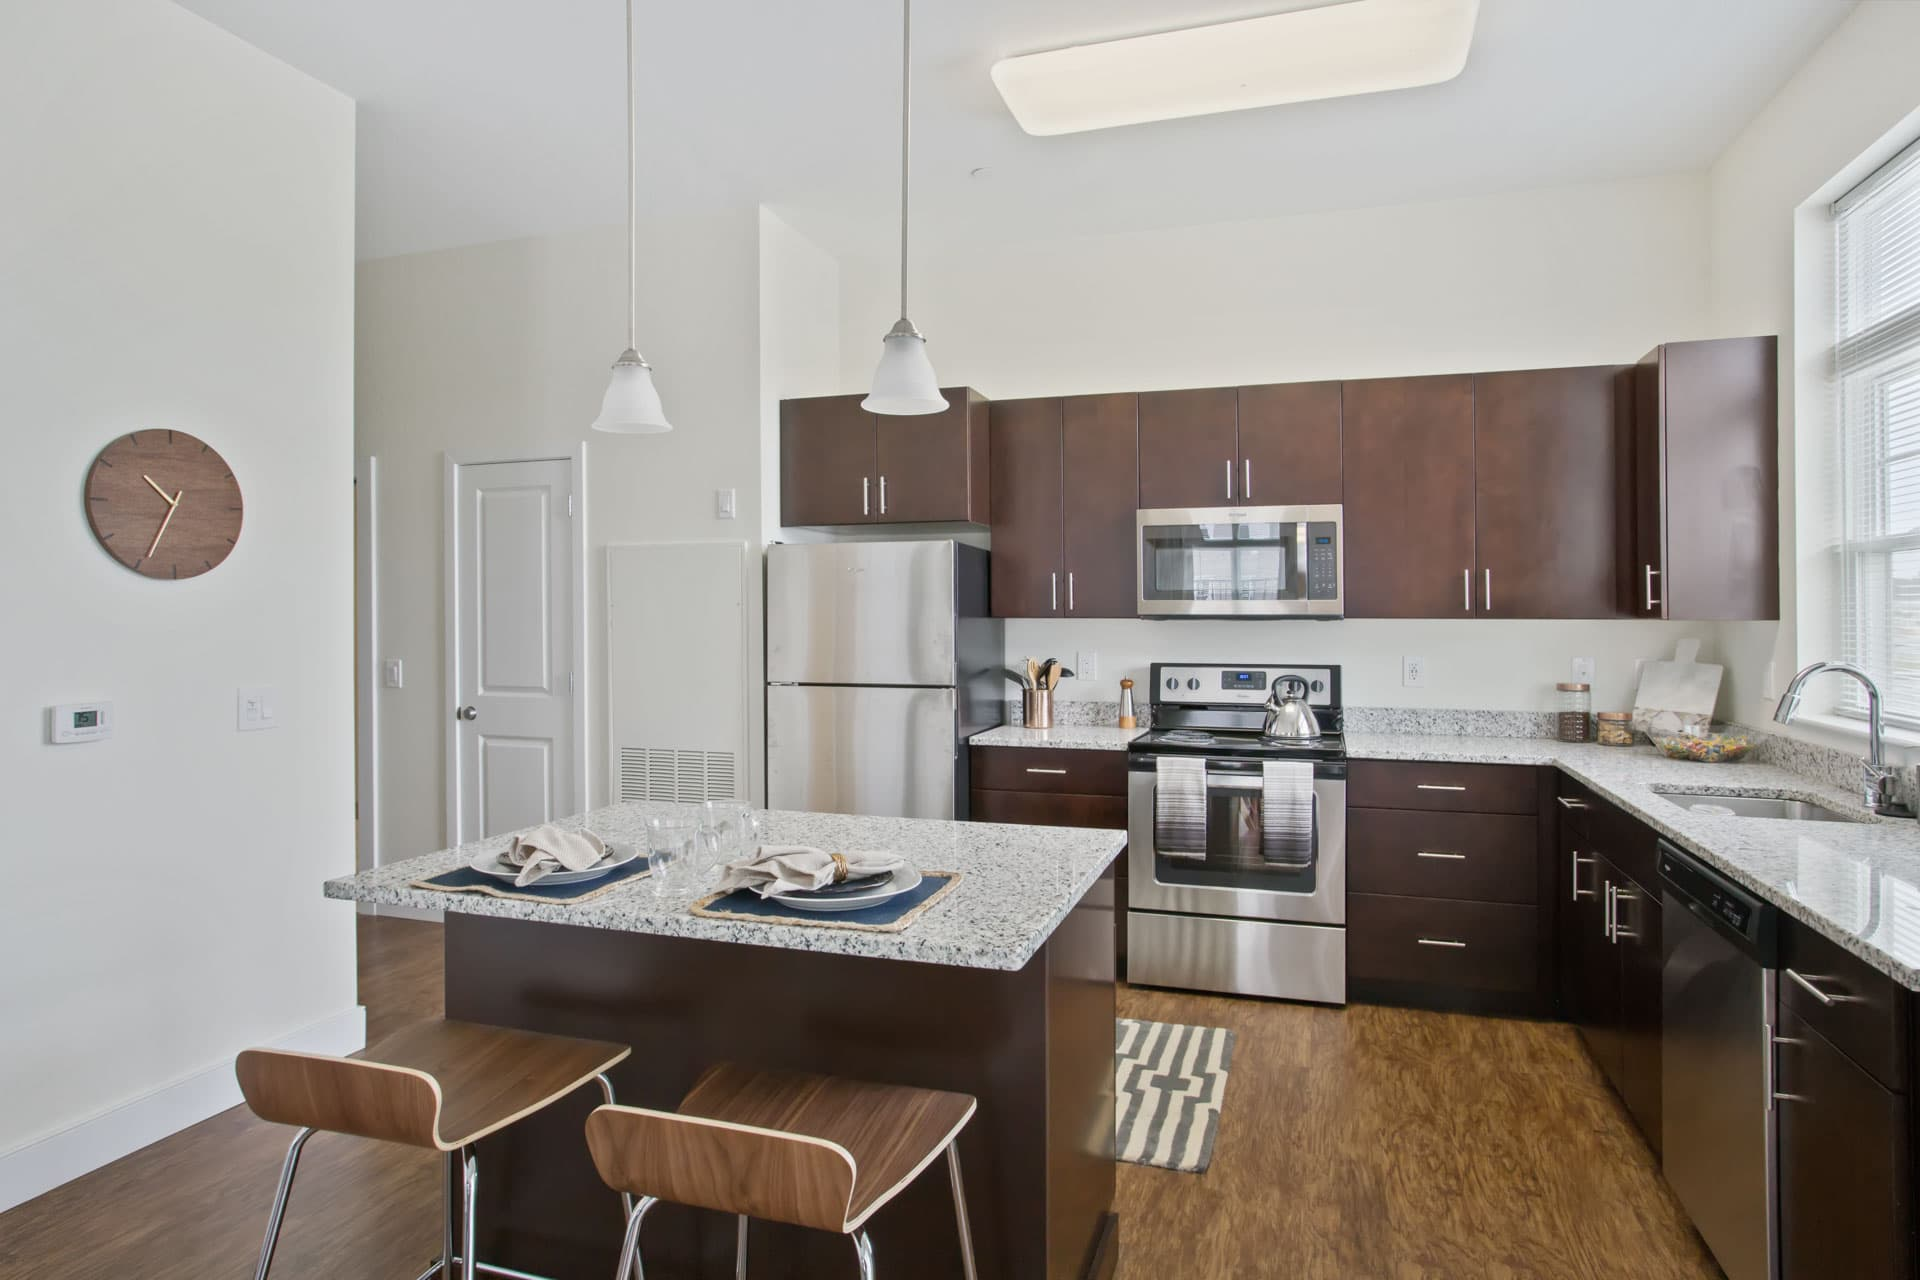 Luxury kitchen inside the Corsa Apartments in Salem, New Hampshire